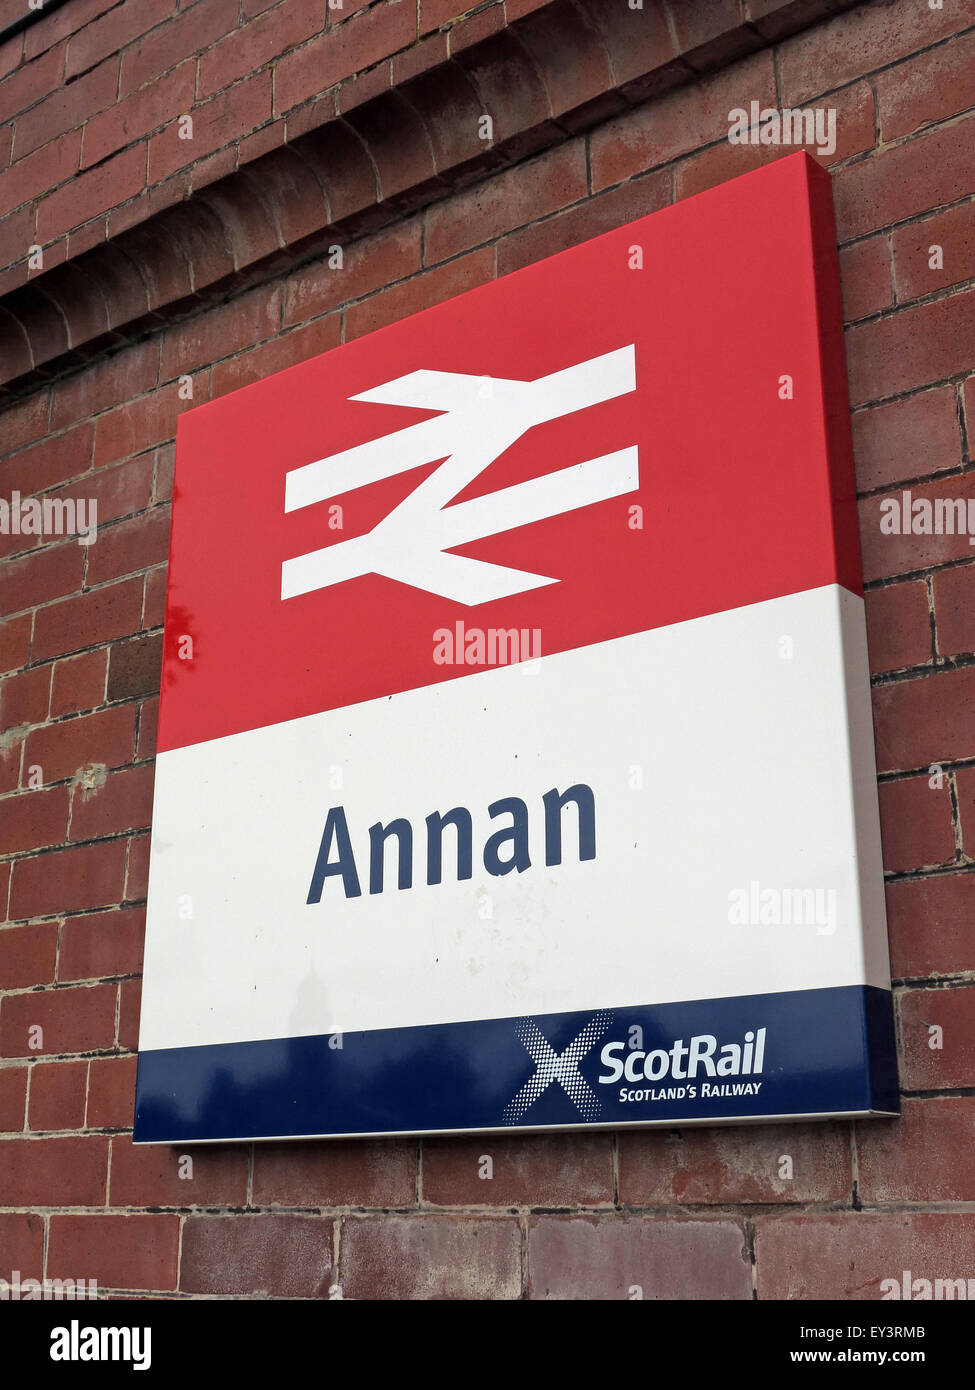 train,line,track,platform,Scotrail,Scot,rail,Abellio,transport,co,company,Ned,Nedrailways,privatised,subsidy,subsidised,network,Dutch,national,operator,Nederlandse,Spoorwegen,Serco-Abellio,Serco,GB,Great,Britain,British,BR,Station Road,Annan,Dumfries and Galloway,Scotland,UK,GoTonySmith,Abelio,poor,service,battle,with,Scotish,Scottish,Parliament,Govt,Government,political,pressure,mounts,2025,Alba,Abellio,transport,operator,Dutch,company,performance,late,fined,delay,delays,regulation,strip,viable,delay,delays,delayed.late,later,rural,Buy Pictures of,Buy Images Of,Scotlands Railway,Franchise Battle,political pressure,transport operator Abellio,Humza Yousaf,Rail passengers,public sector bid